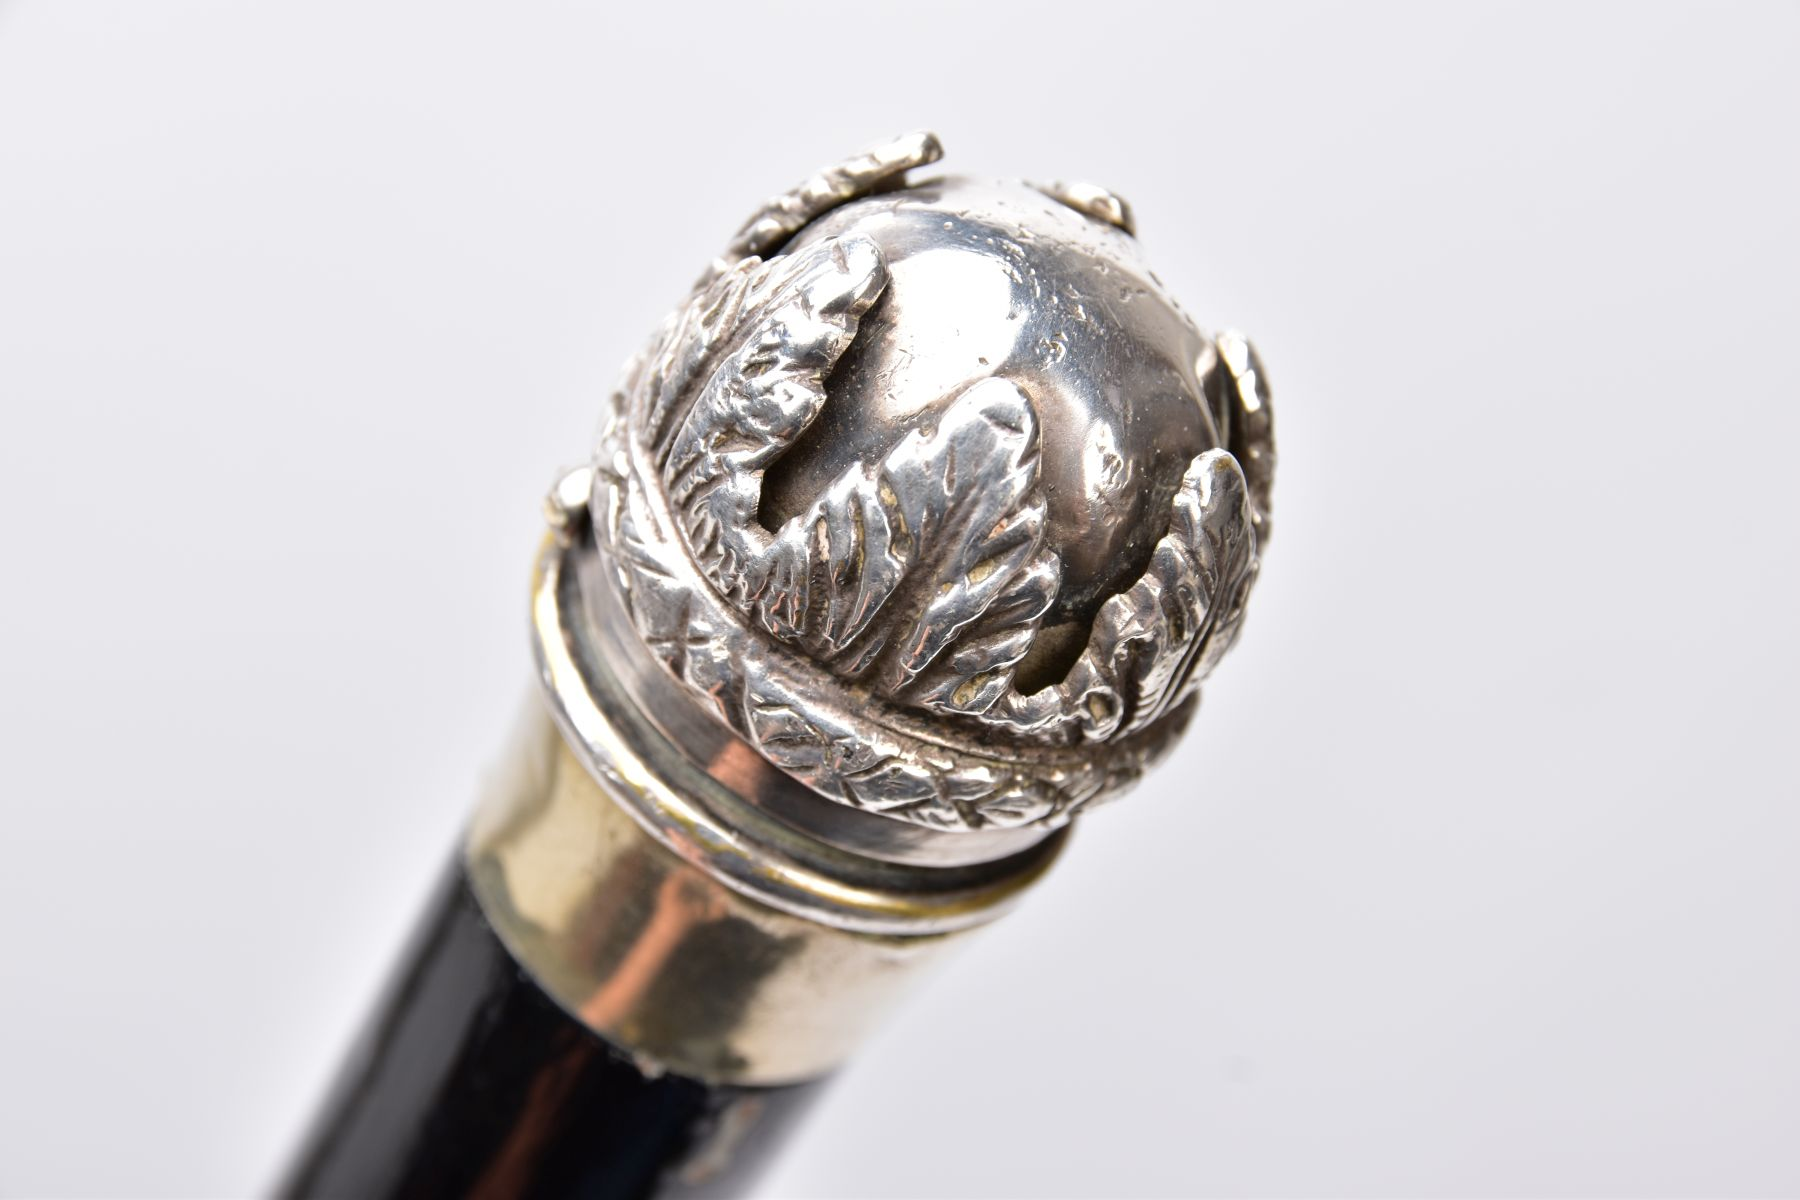 TWO MILITARY RELATED SWAGGER STYLE STICKS, to include a white metal sphere topped with white metal - Image 8 of 9